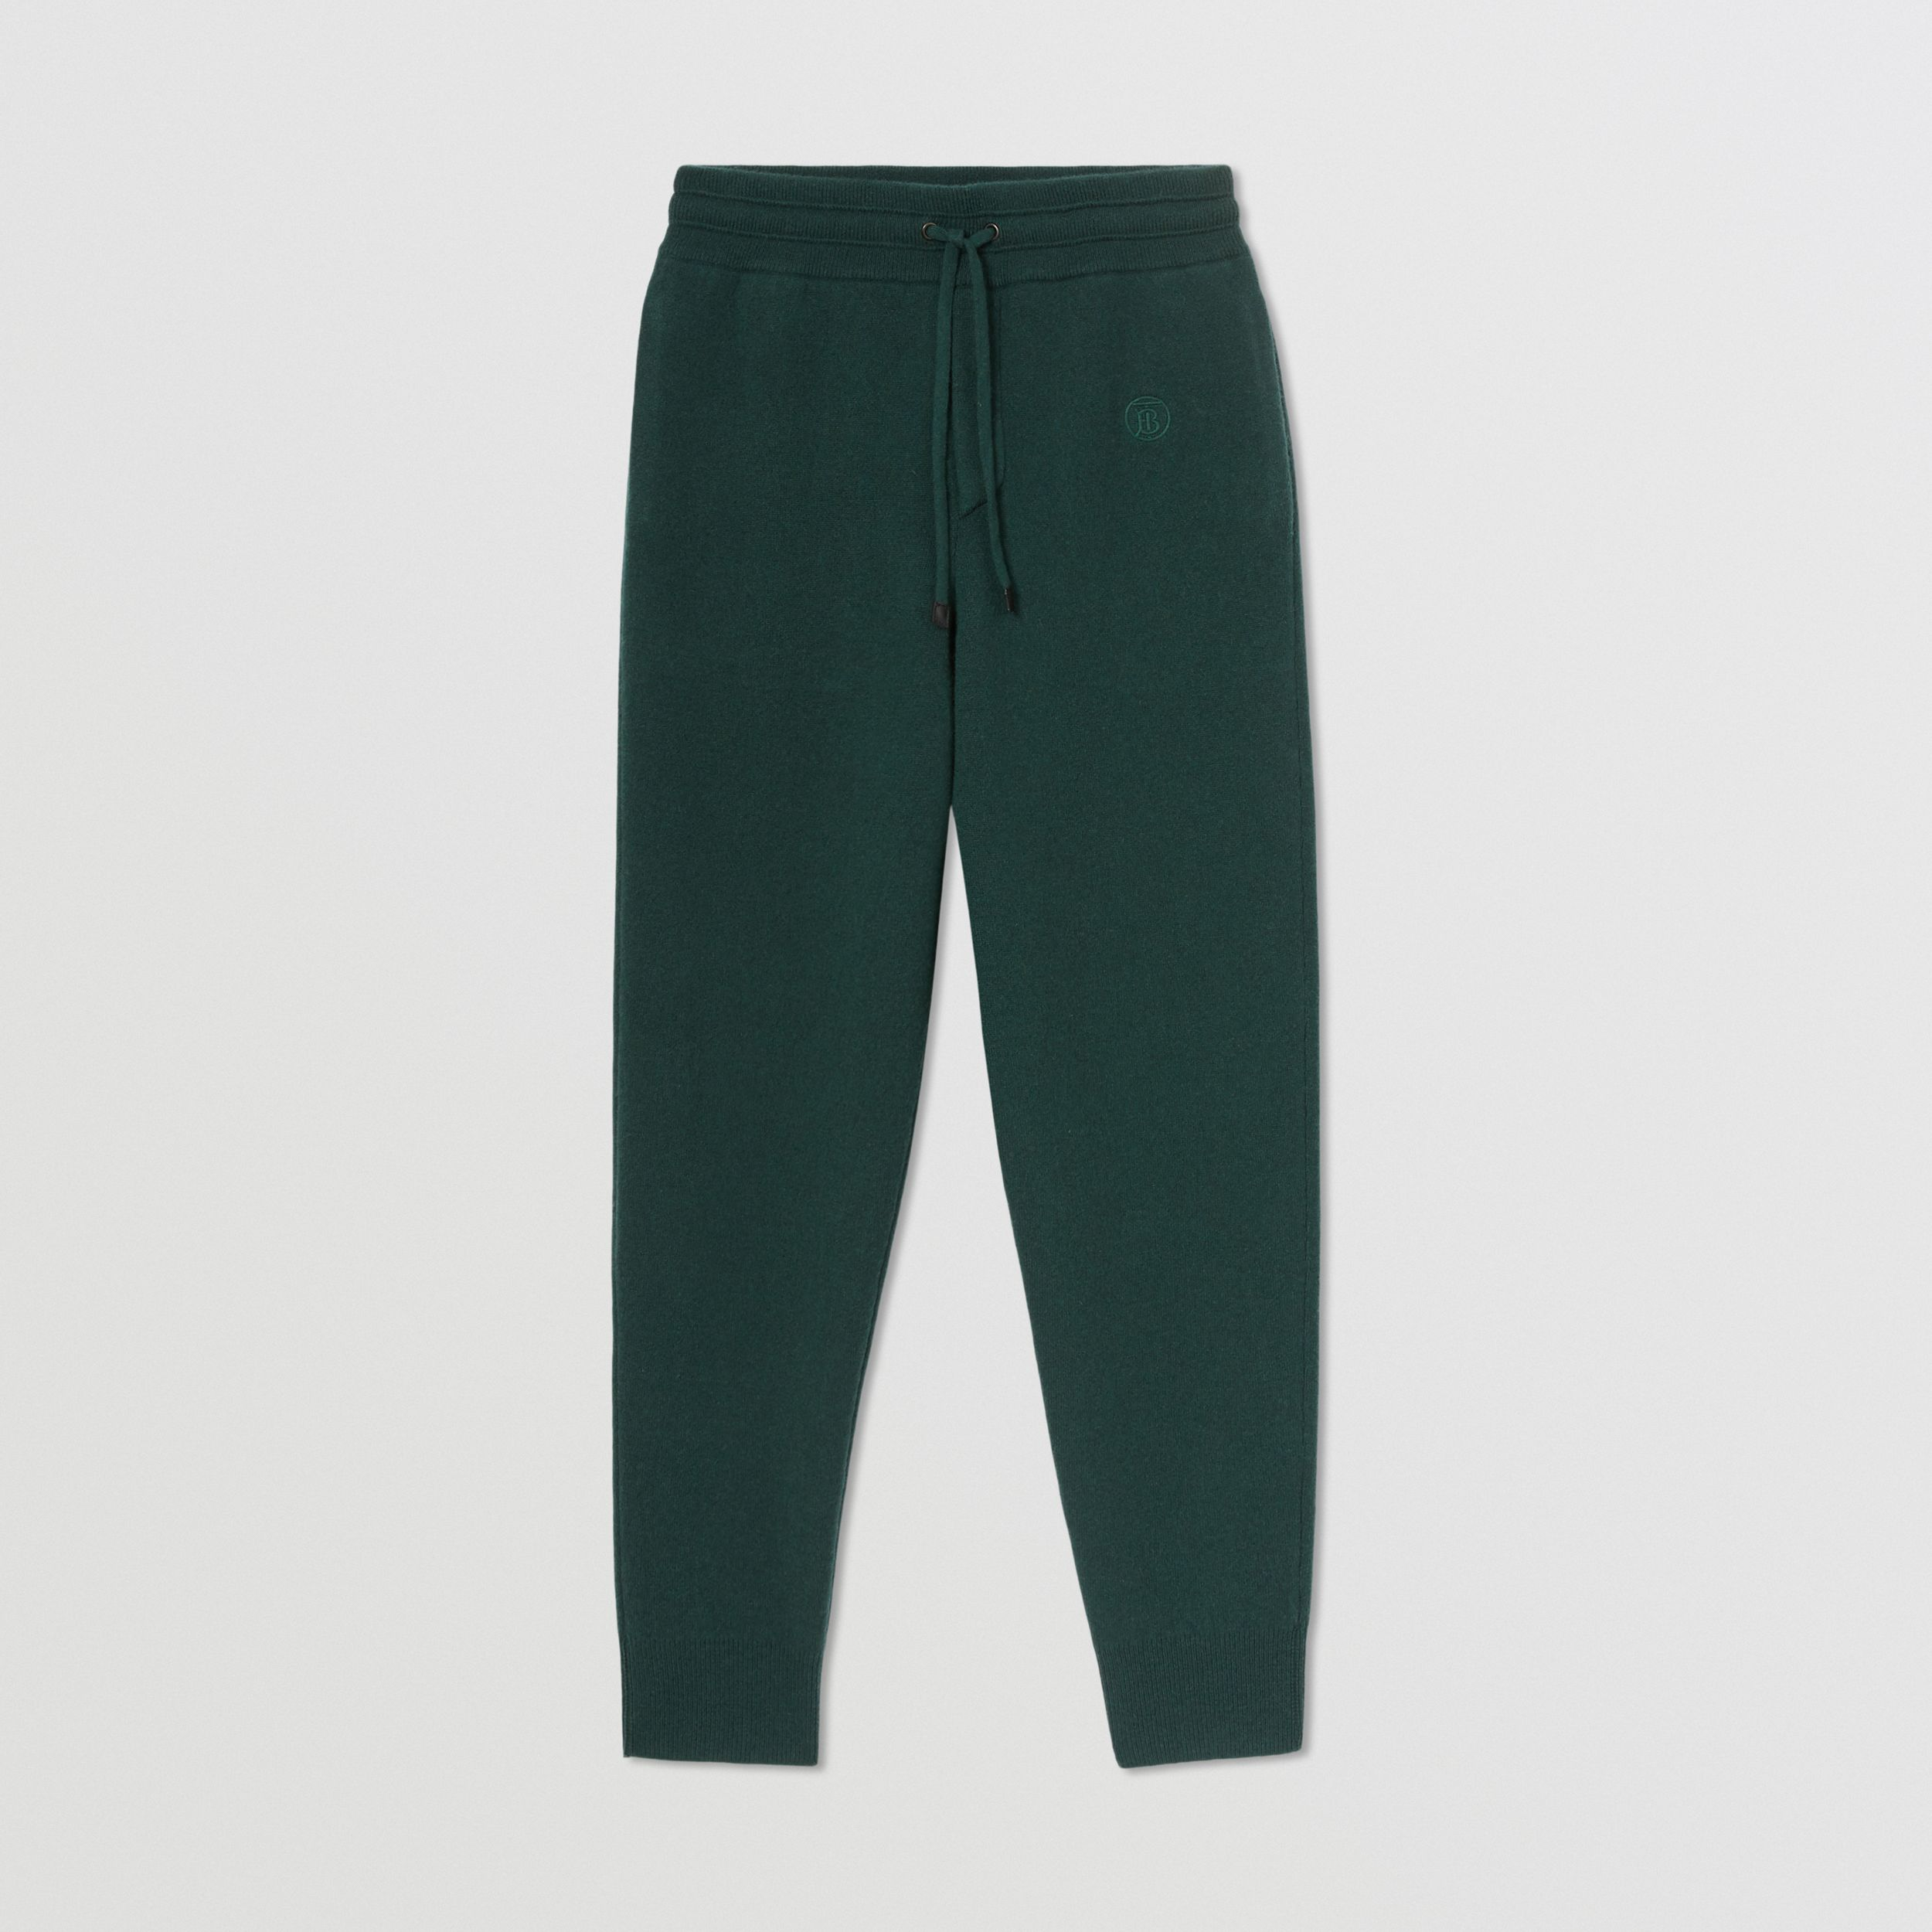 Monogram Motif Cashmere Blend Jogging Pants in Bottle Green - Women | Burberry - 4